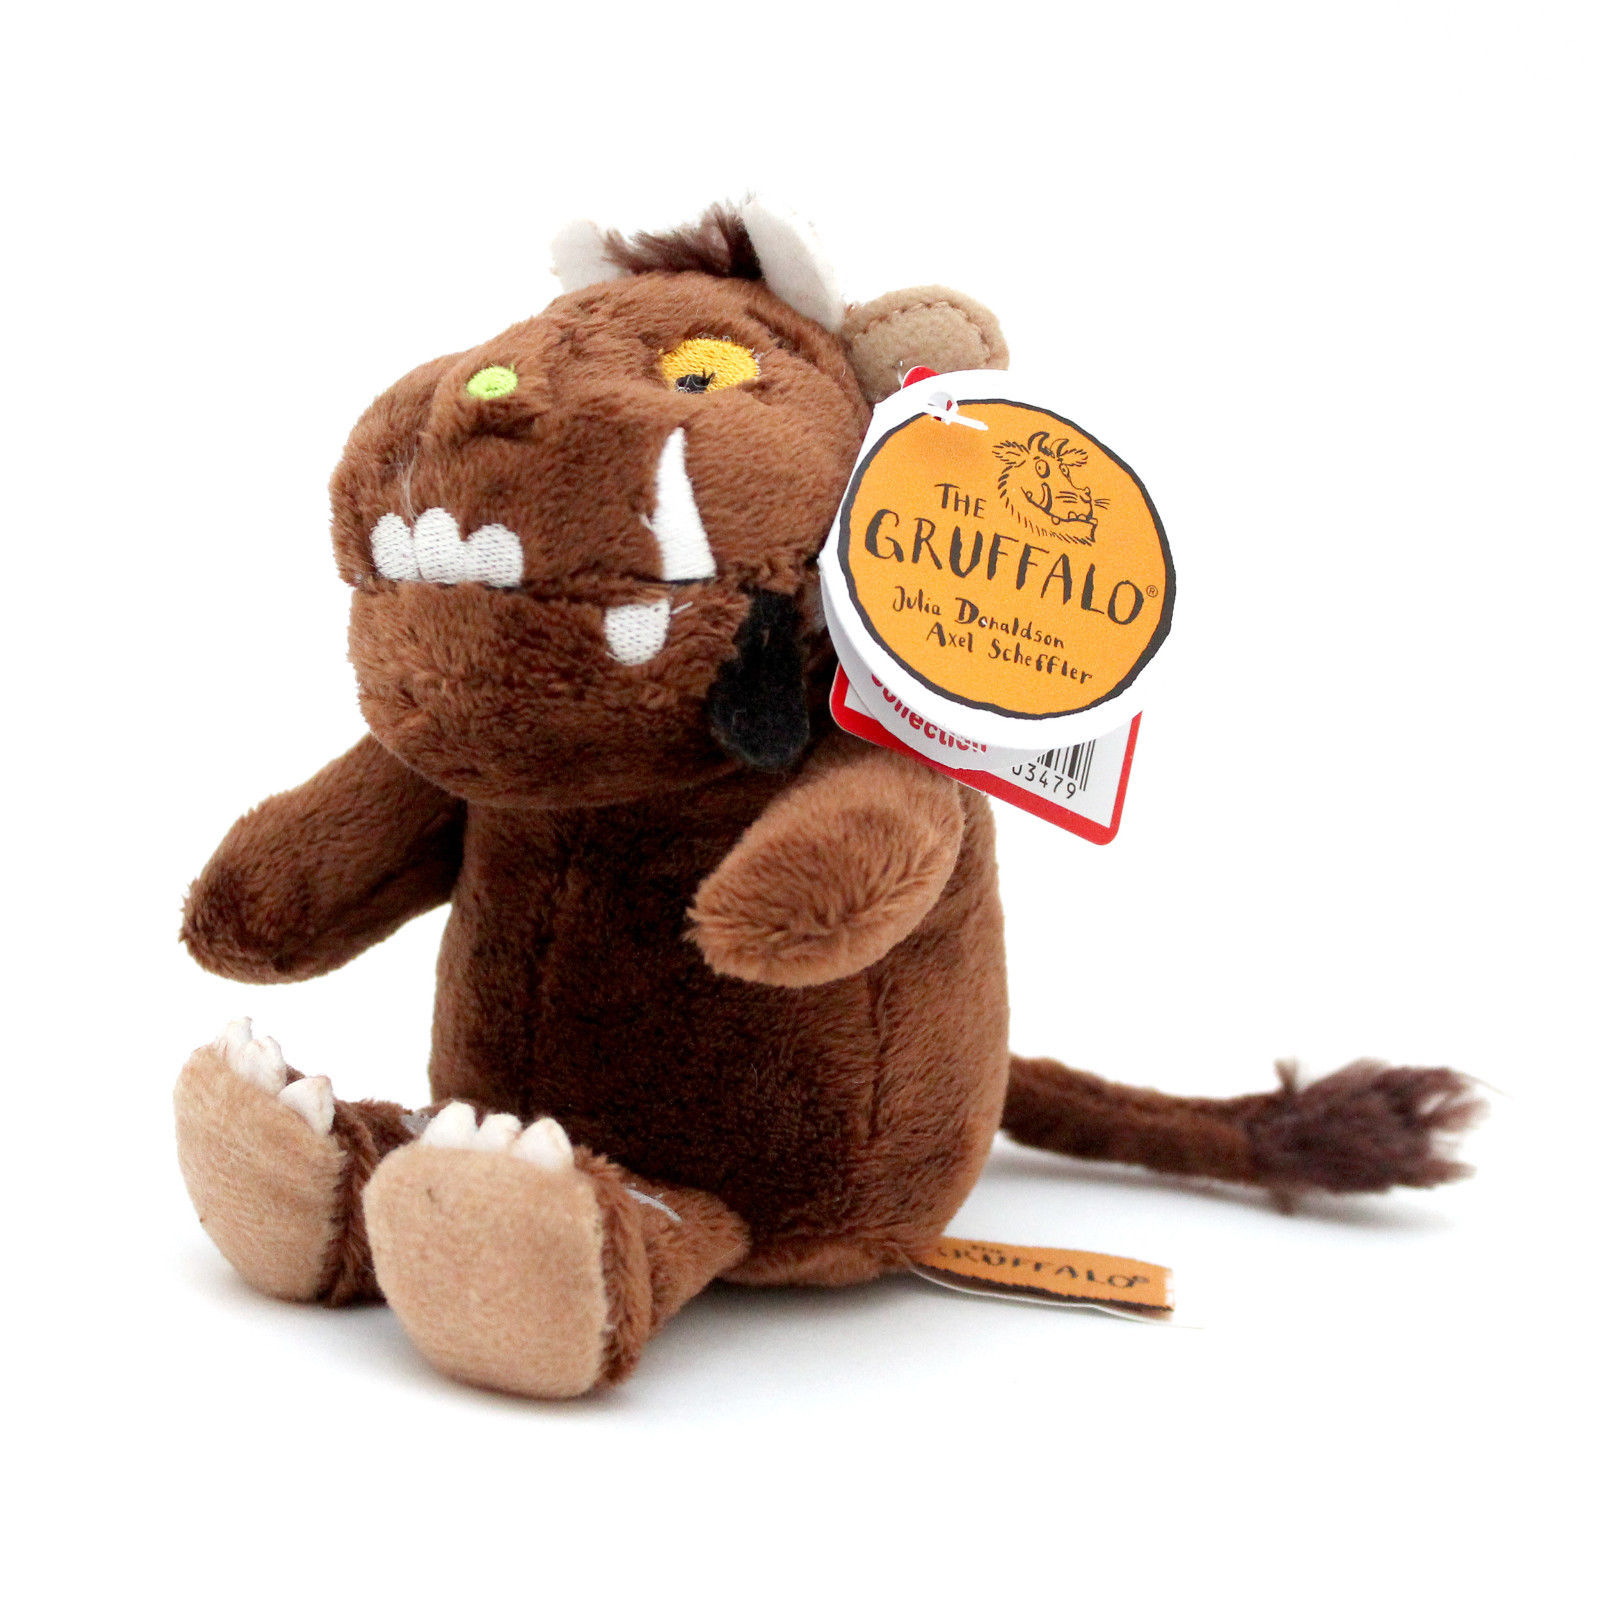 The Gruffalo small plush soft toy